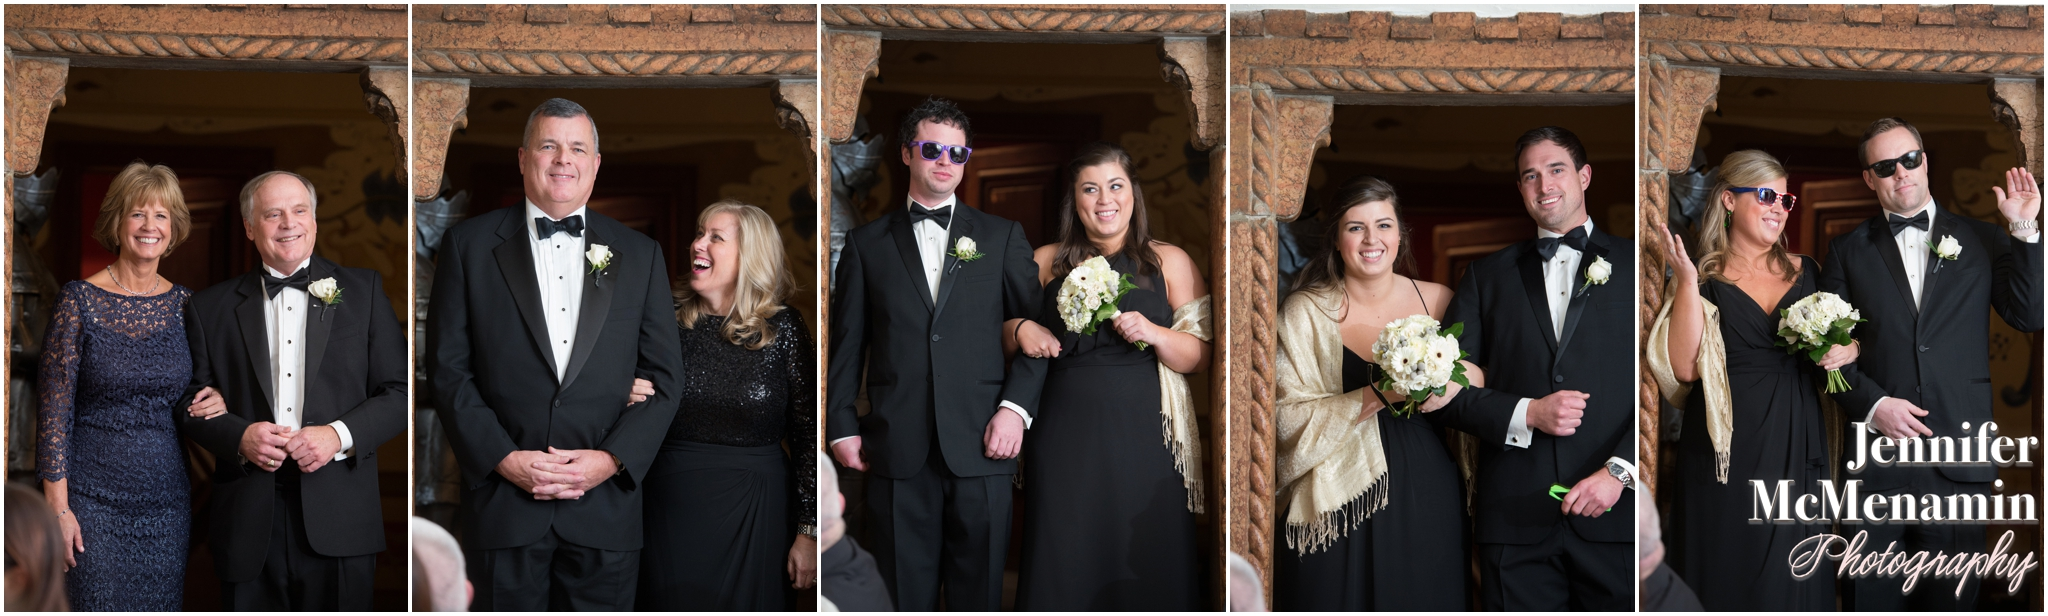 0087_RyanClemmens_02359-0636_JenniferMcMenaminPhotography_Immaculate-Conception-Church_The-Cloisters_Baltimore-wedding-photography_Baltimore-wedding-photographer